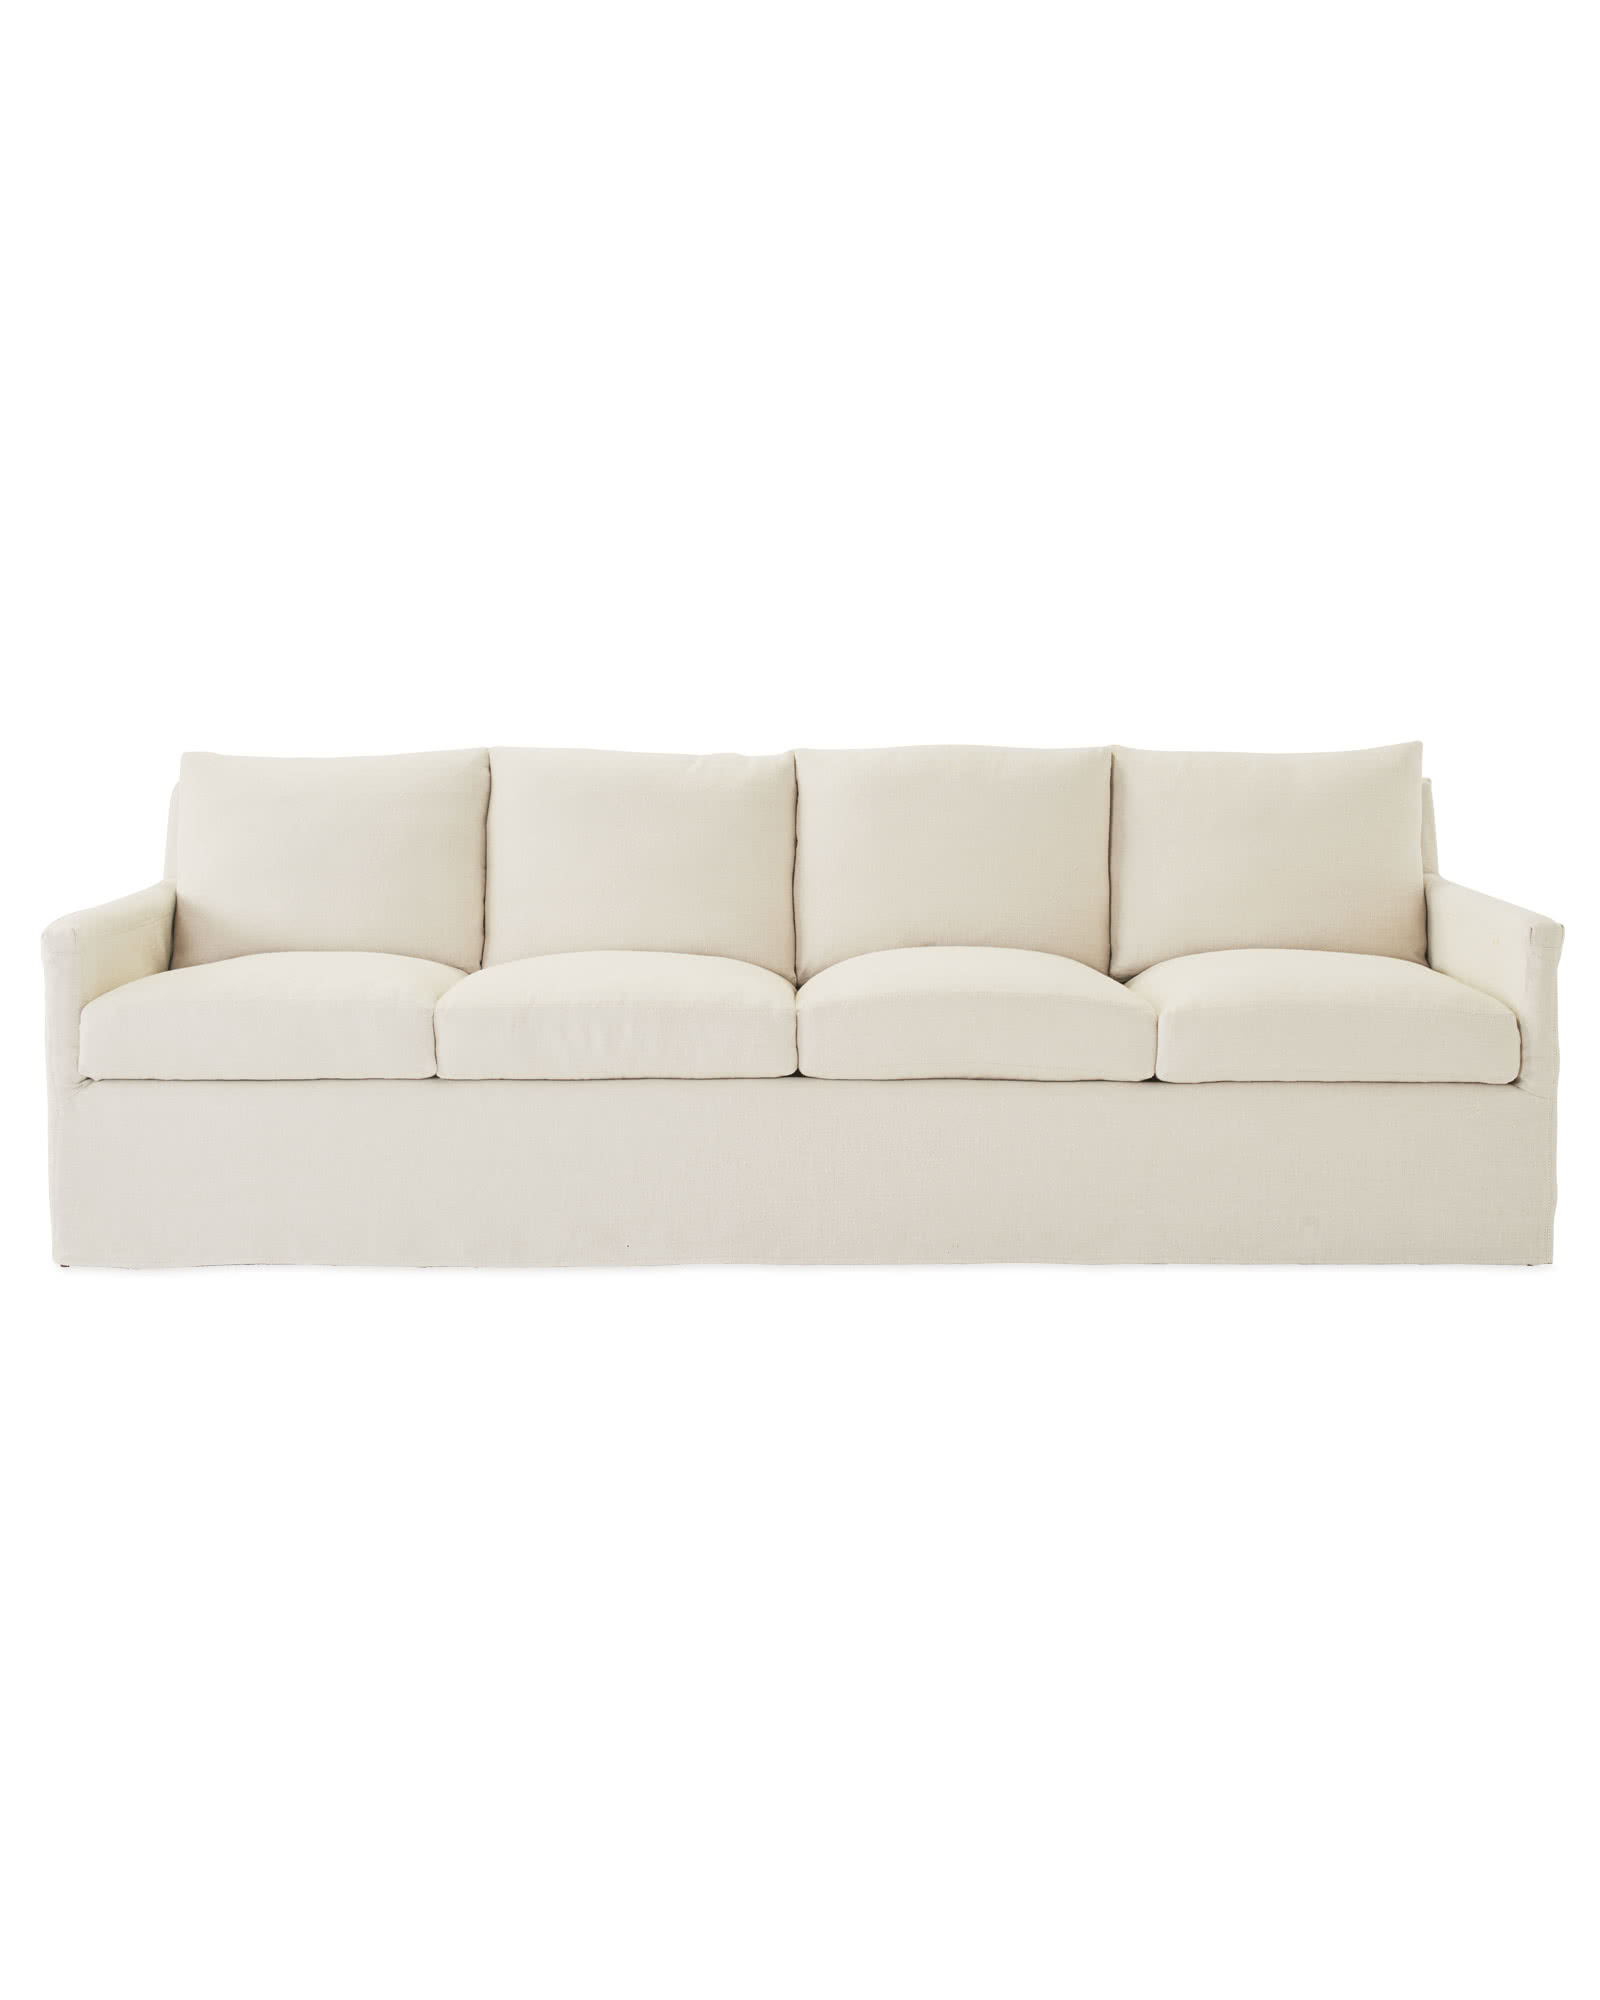 Spruce Street 4-Seat Sofa – Slipcovered,